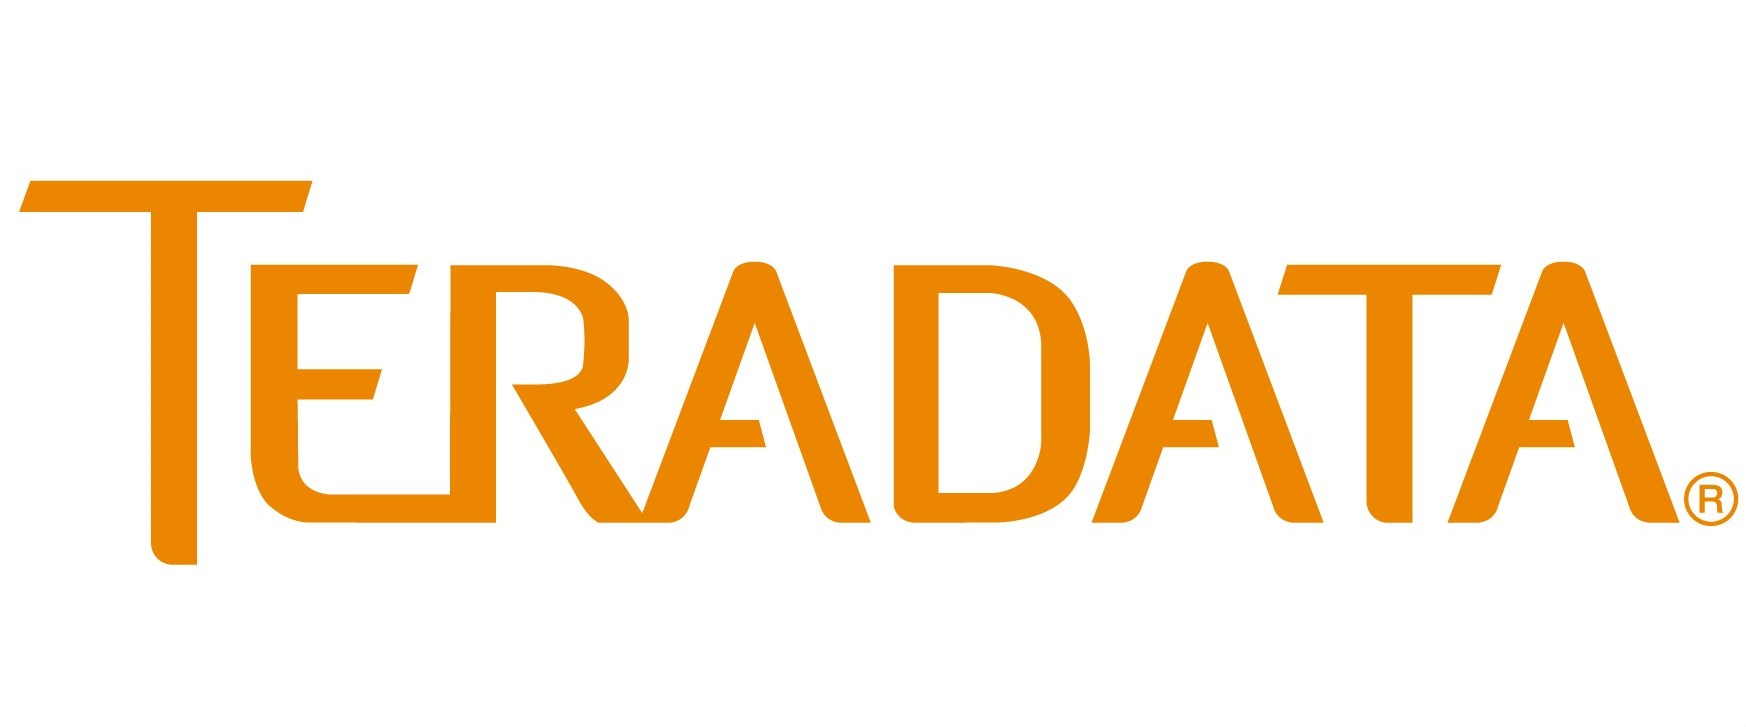 Teradata: analisi database più intelligenti per business più efficienti